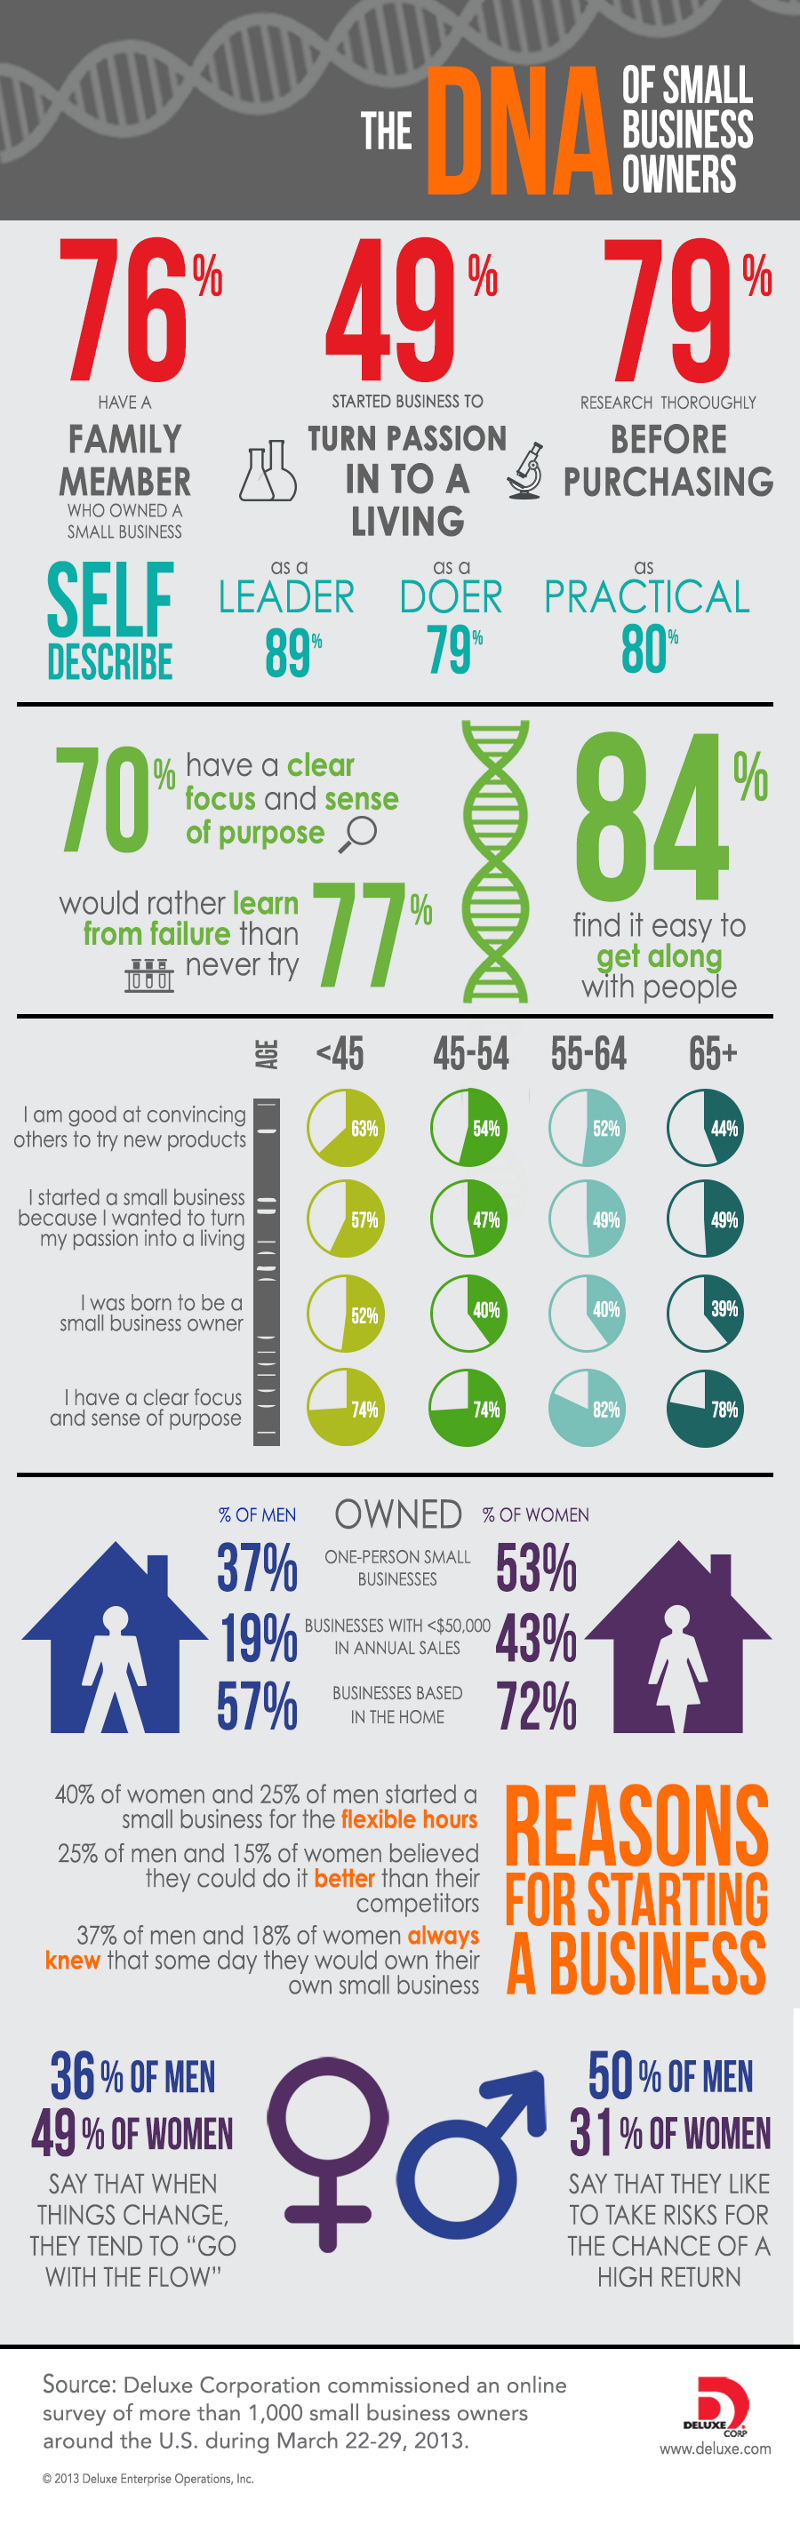 The DNA of Small Business Owners